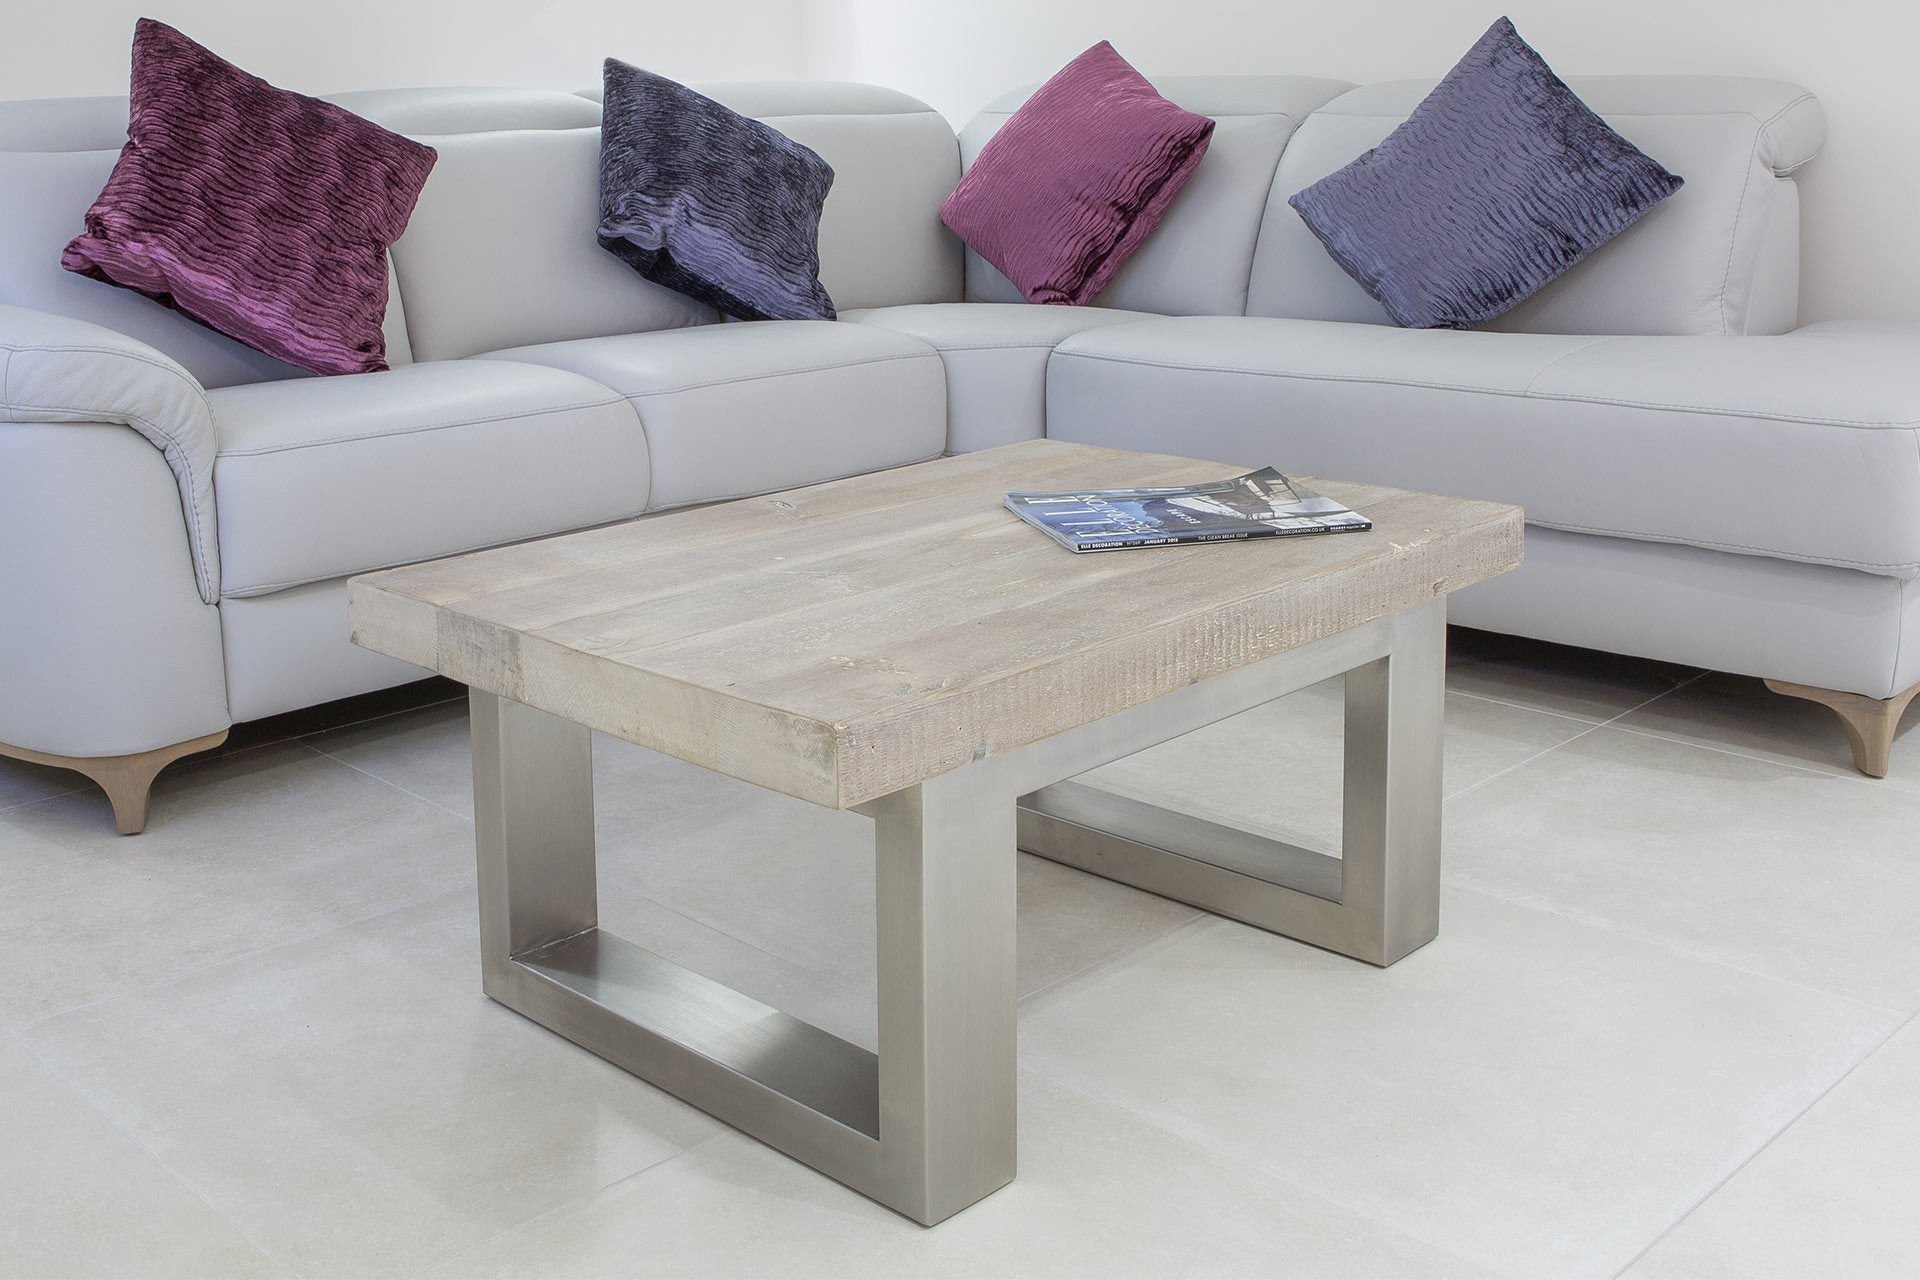 Grey 90cm x 60cm Coffee Table